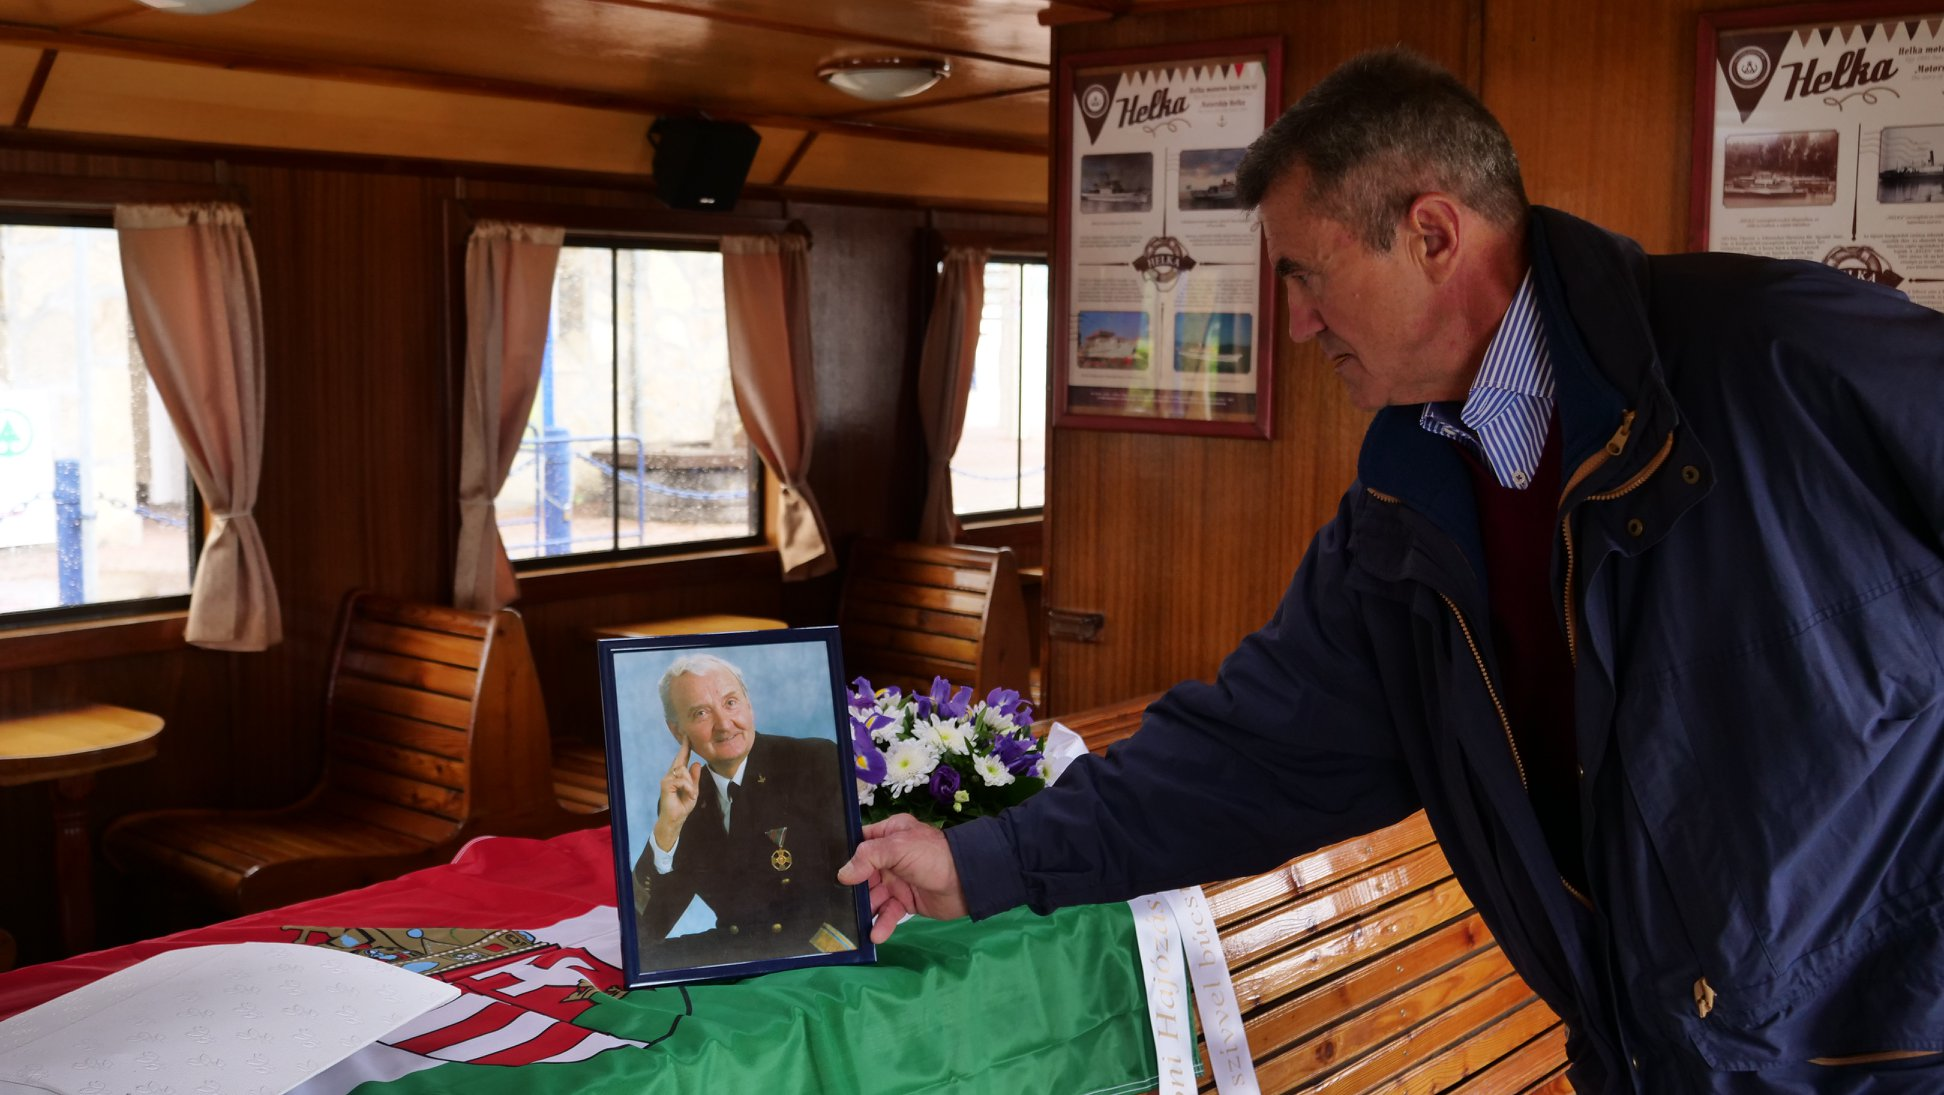 Istvan with father's photo and ashes